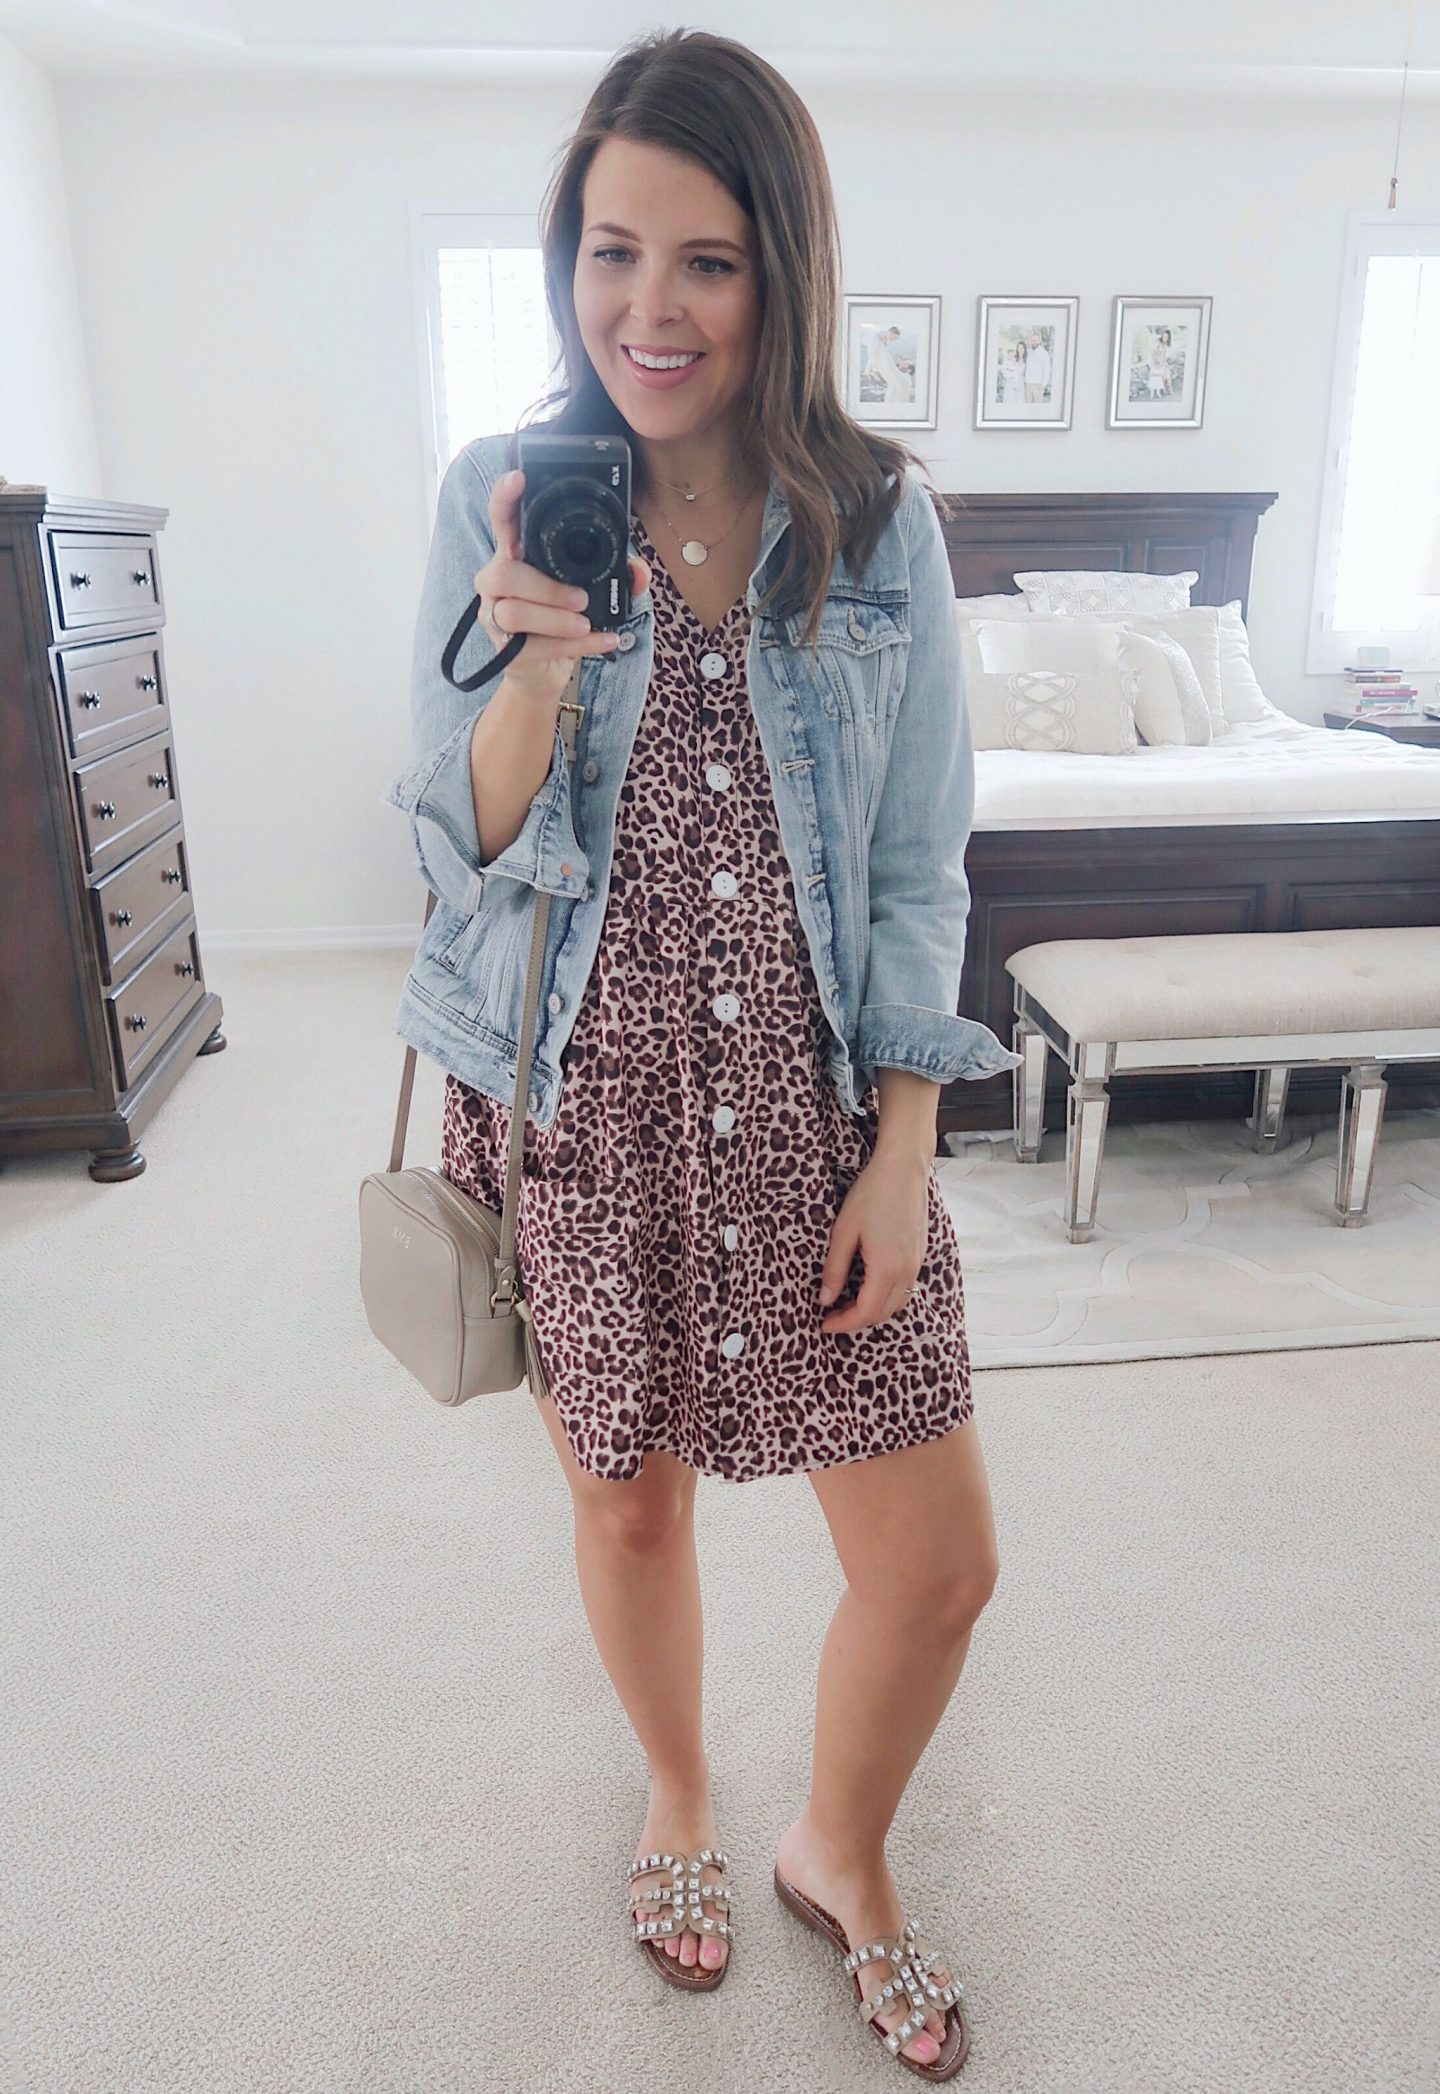 amazon try-on brie_bemis_rearick_amazon_leopard_button_down_loose_swing_dress_with_pockets_1